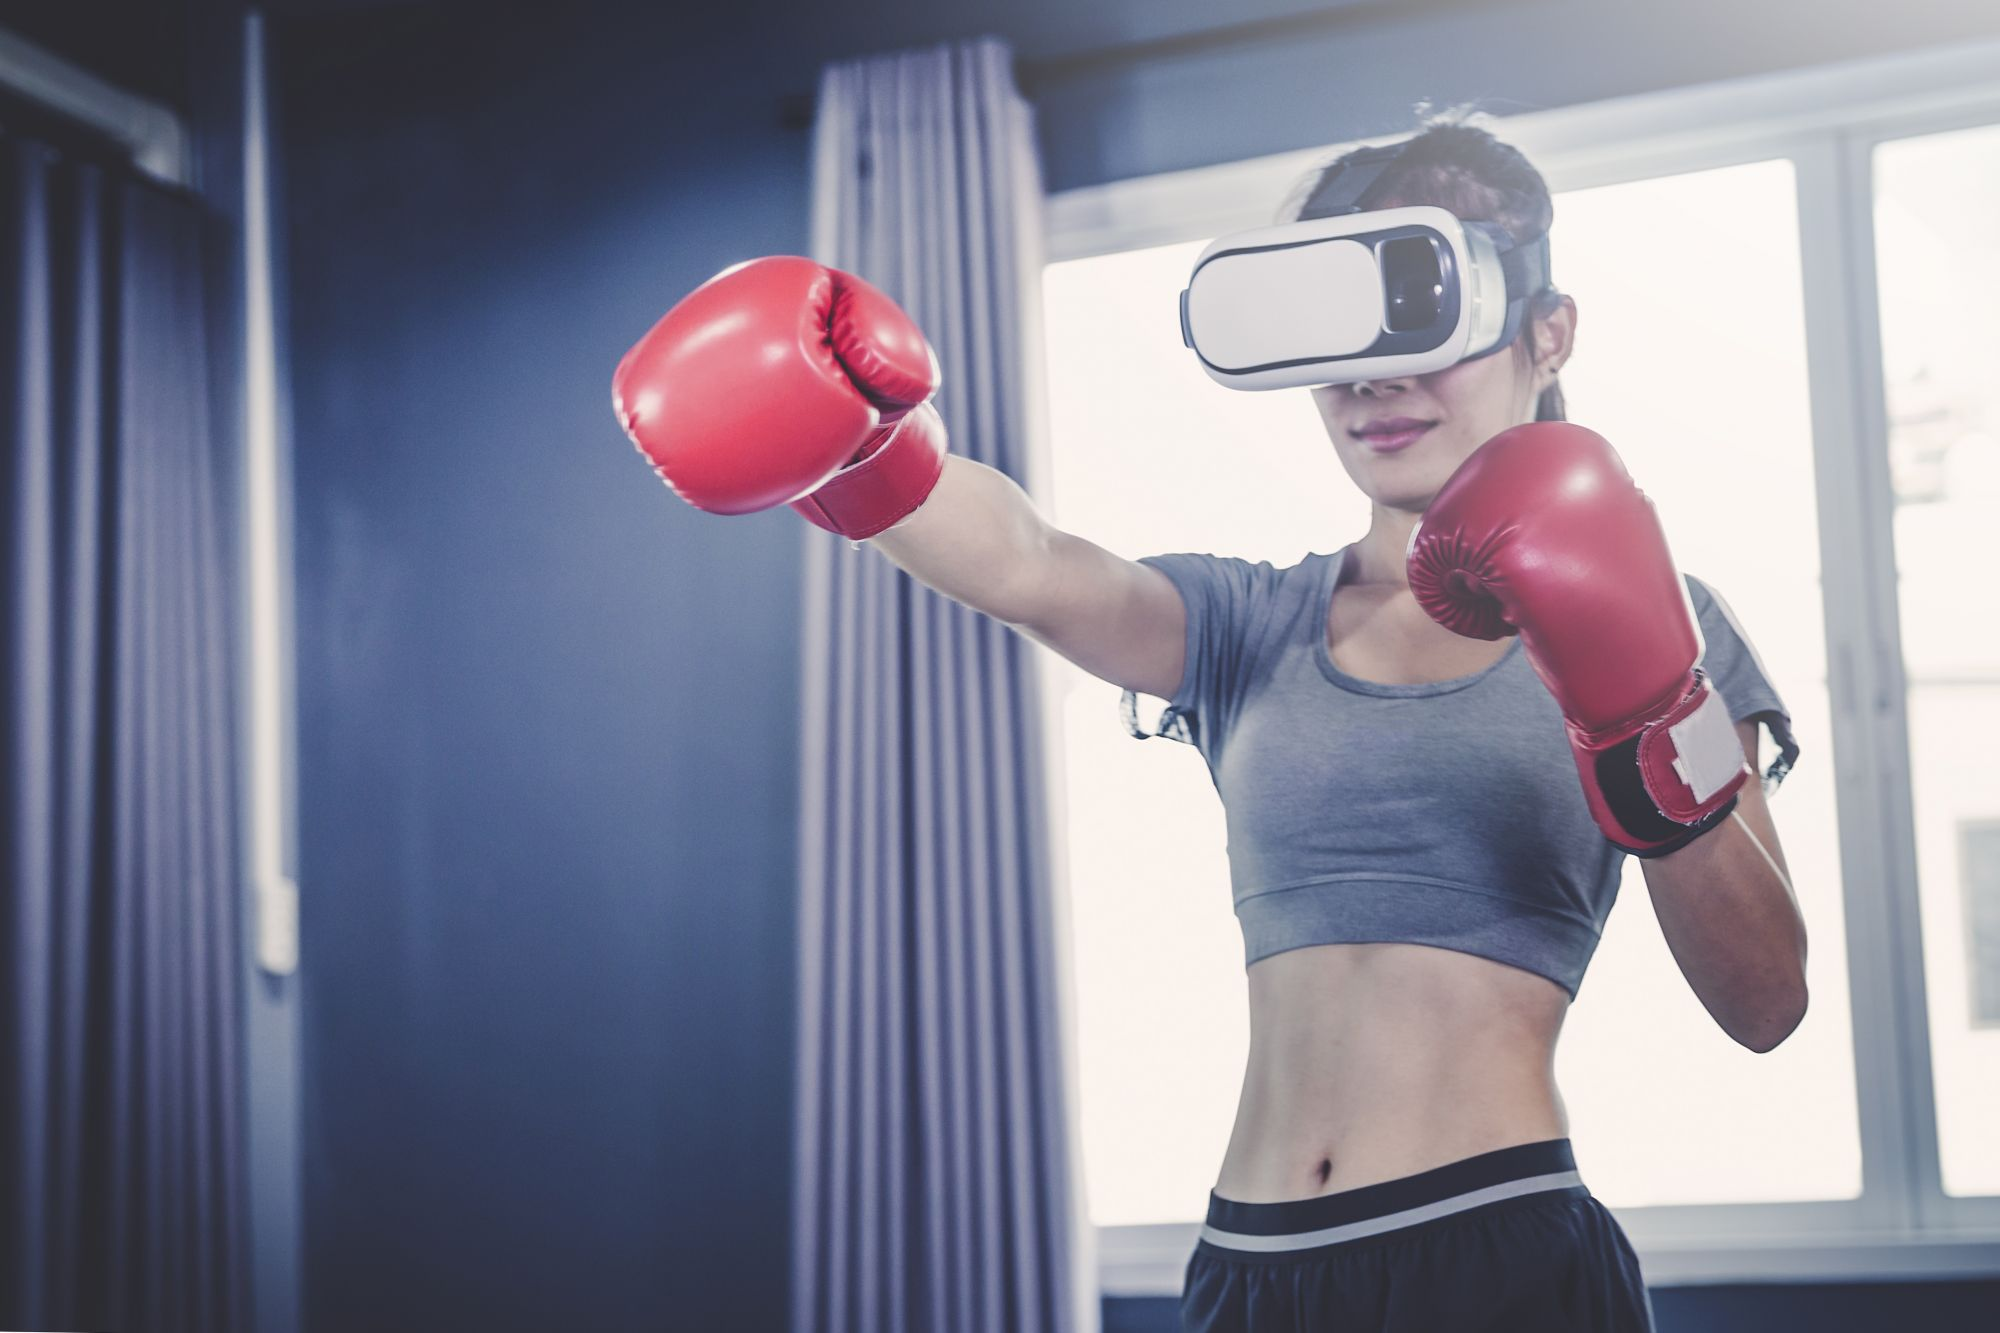 7 Fitness Video Games To Try For A Fun At Home Workout - Tatler Hong Kong